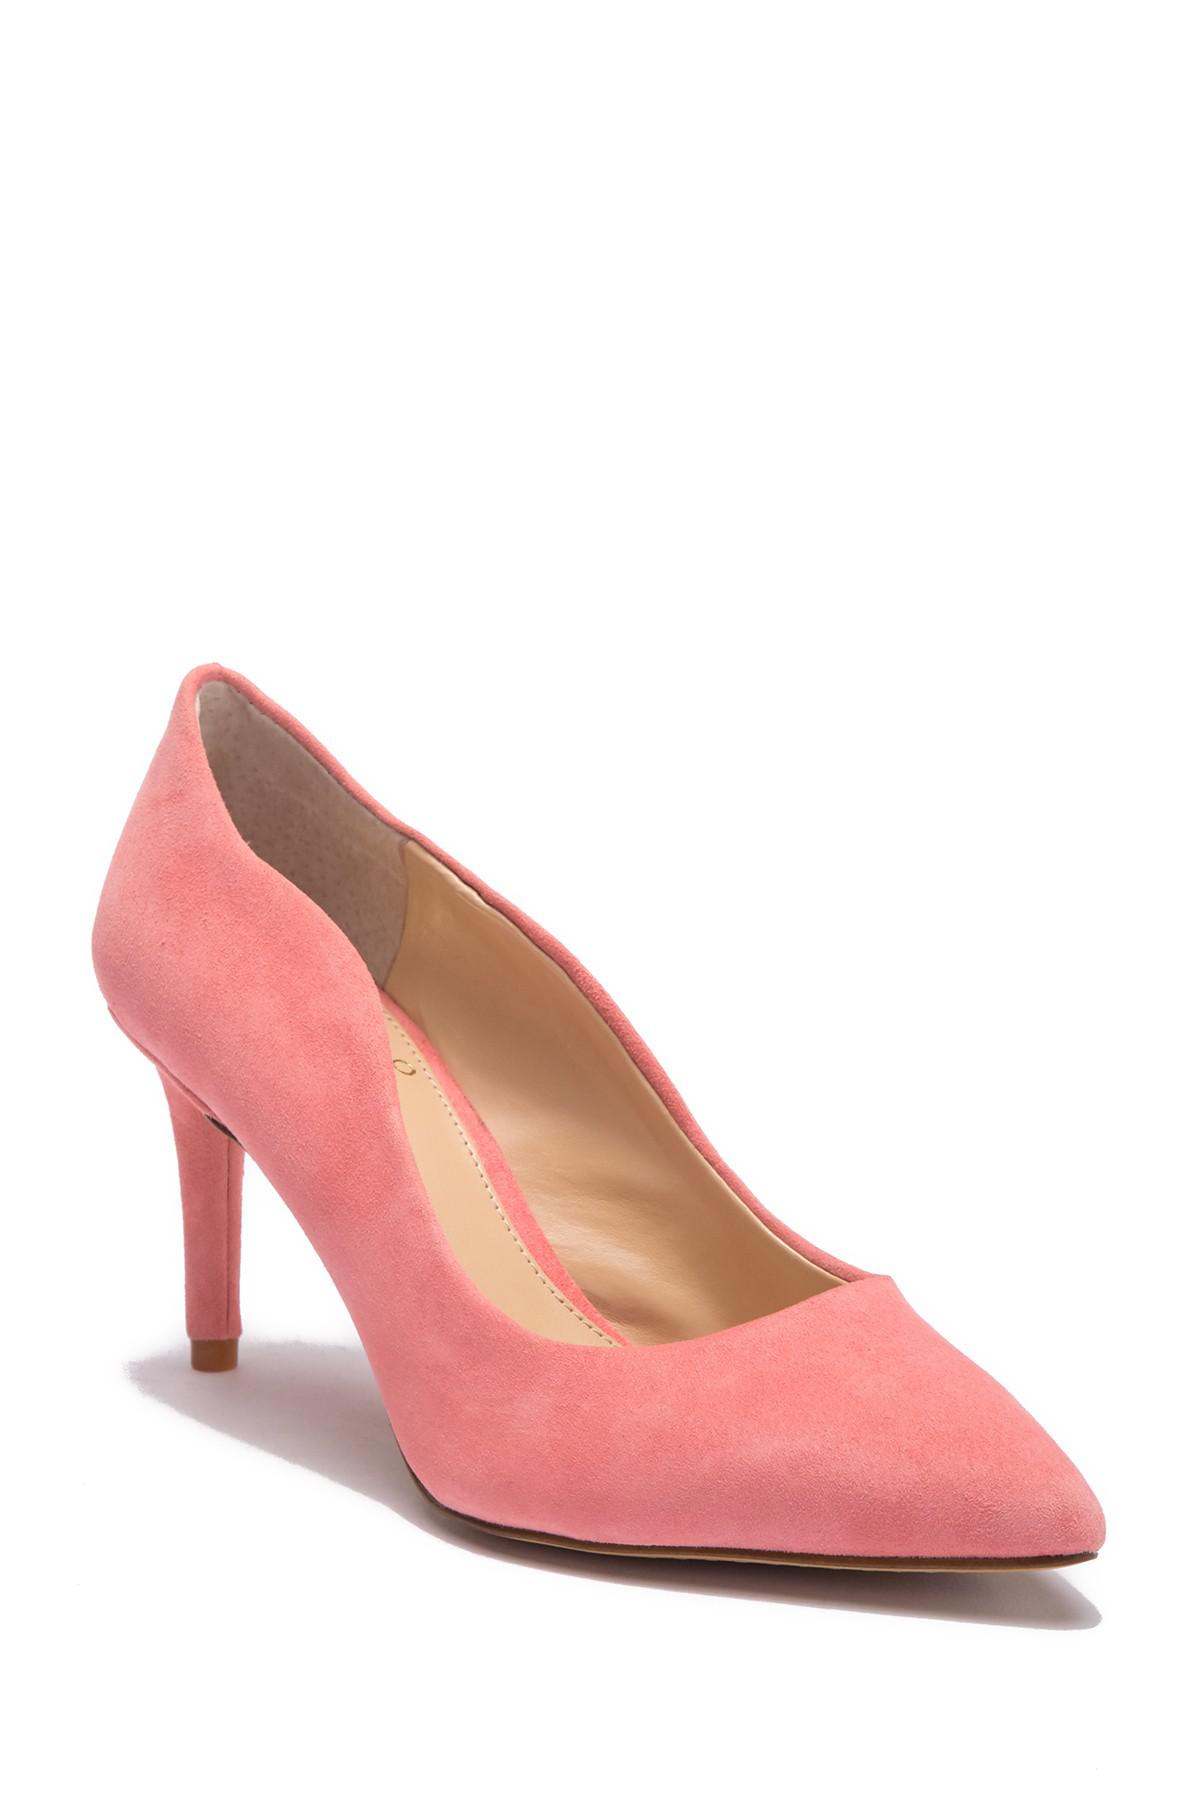 ea62dabe7d8 Vince Camuto. Women s Pink Jaynita Pointy Toe Pump.  99  40 From Nordstrom  Rack